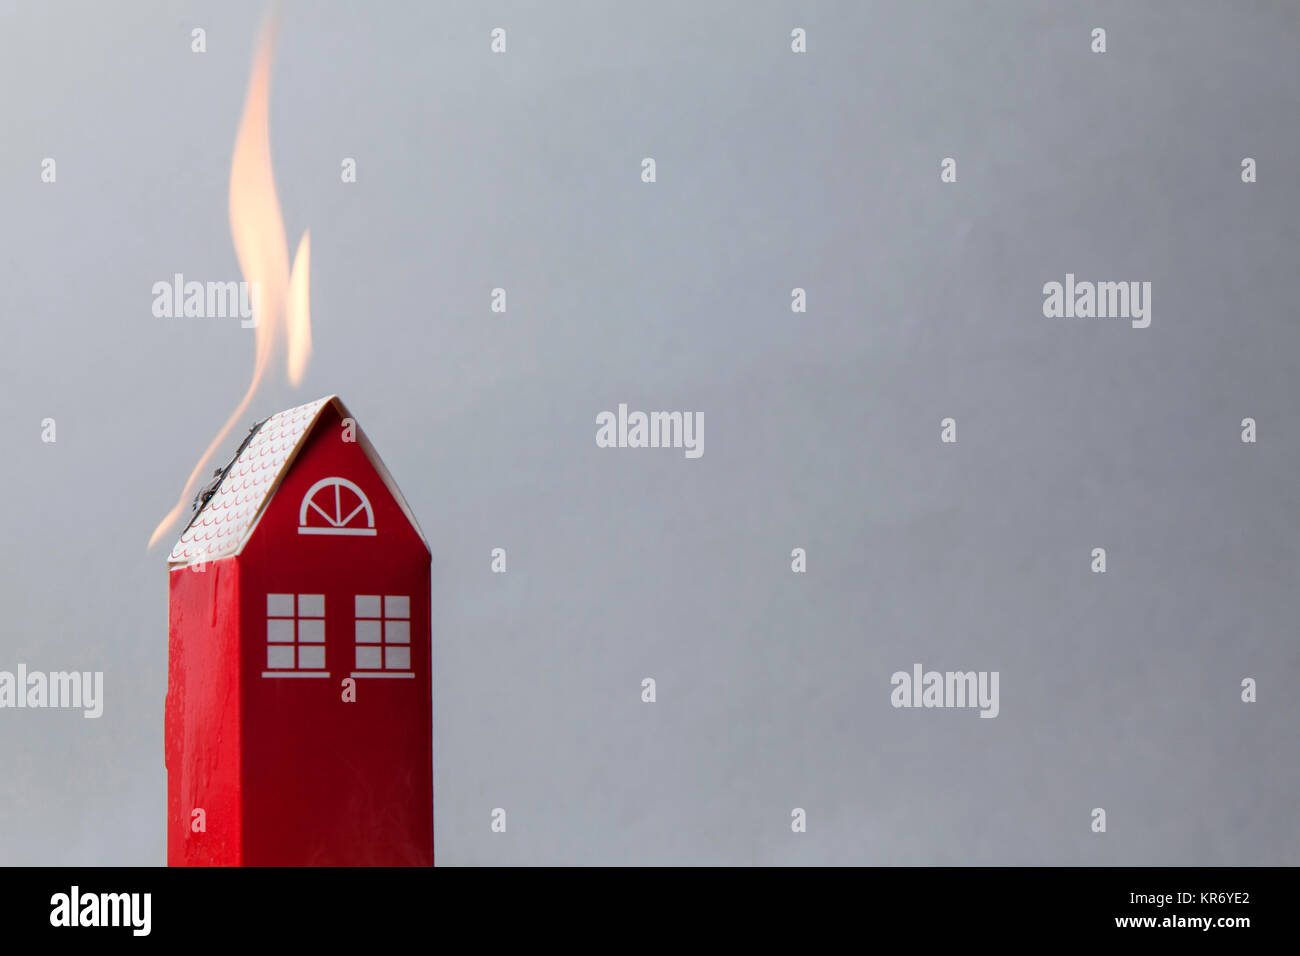 House fire concept. Toy house with flames - Stock Image